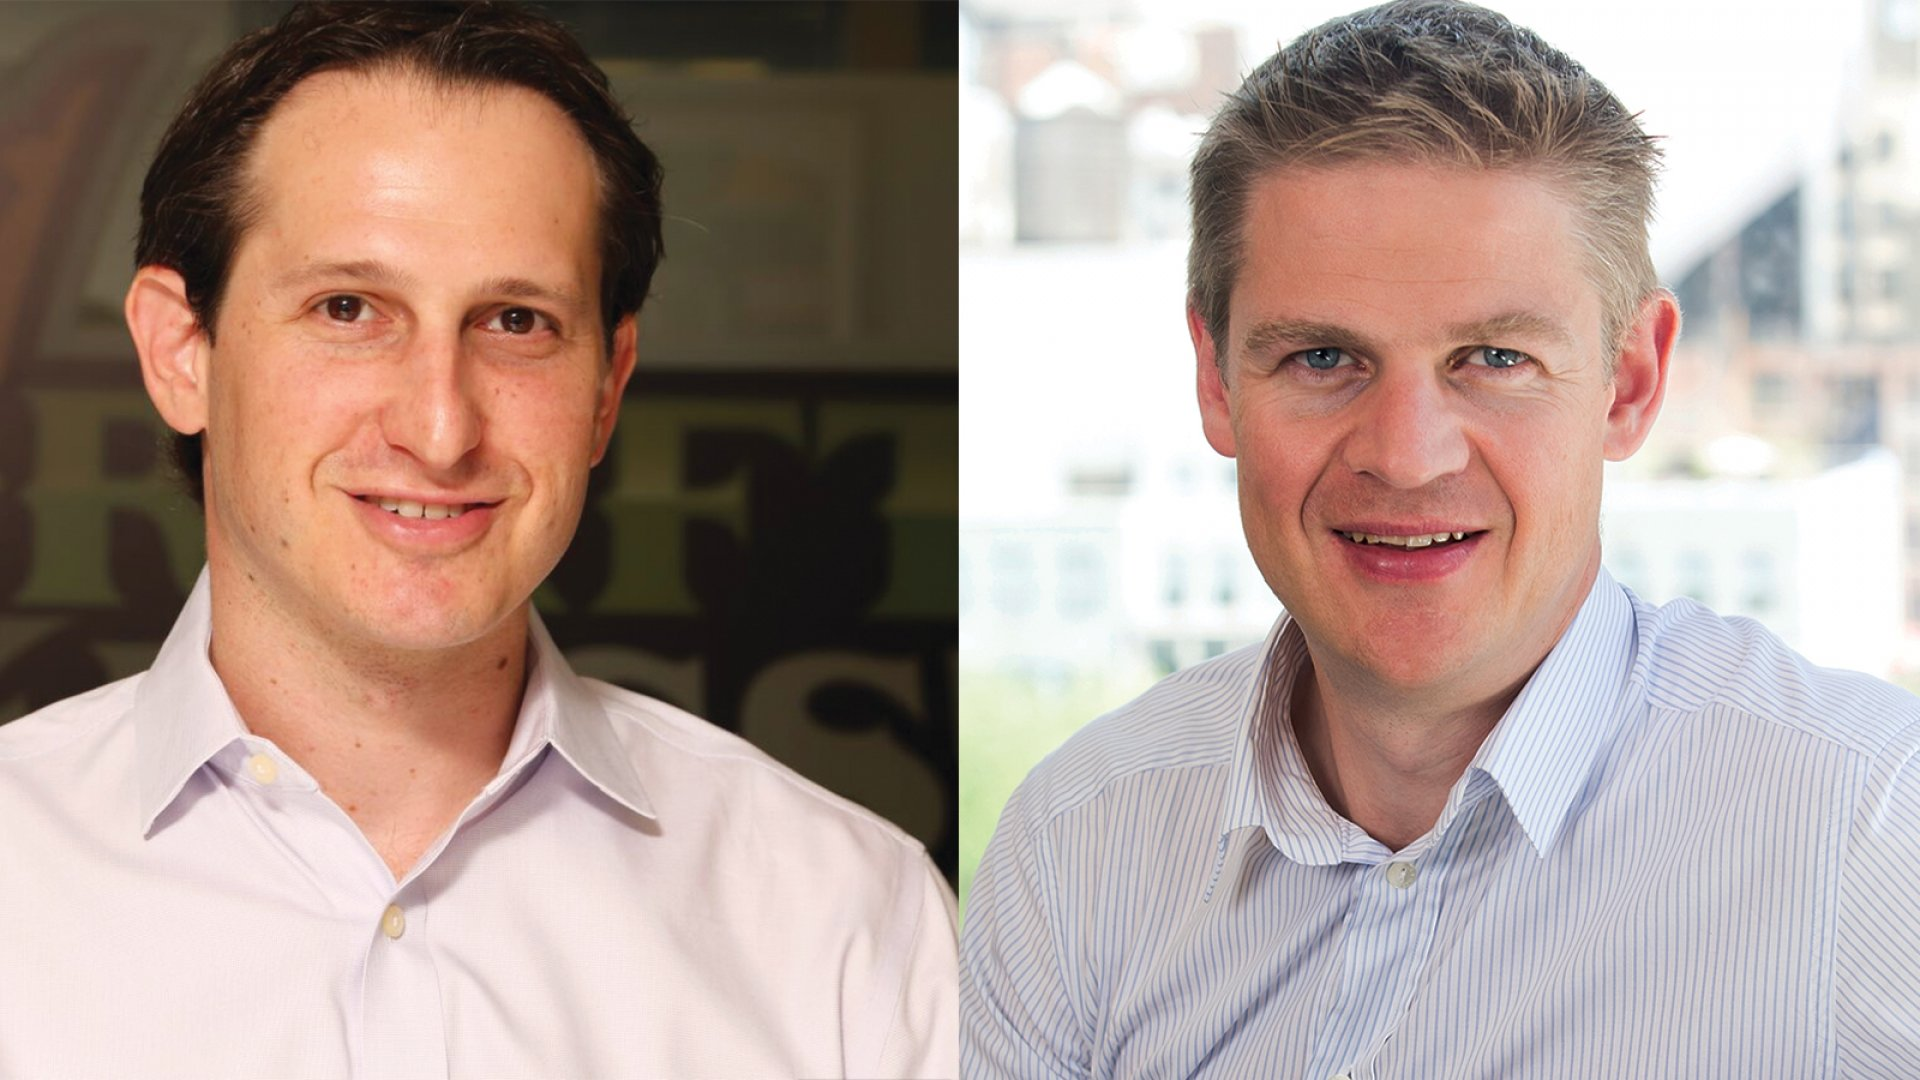 From left, DraftKings CEO Jason Robins and FanDuel CEO Nigel Eccles